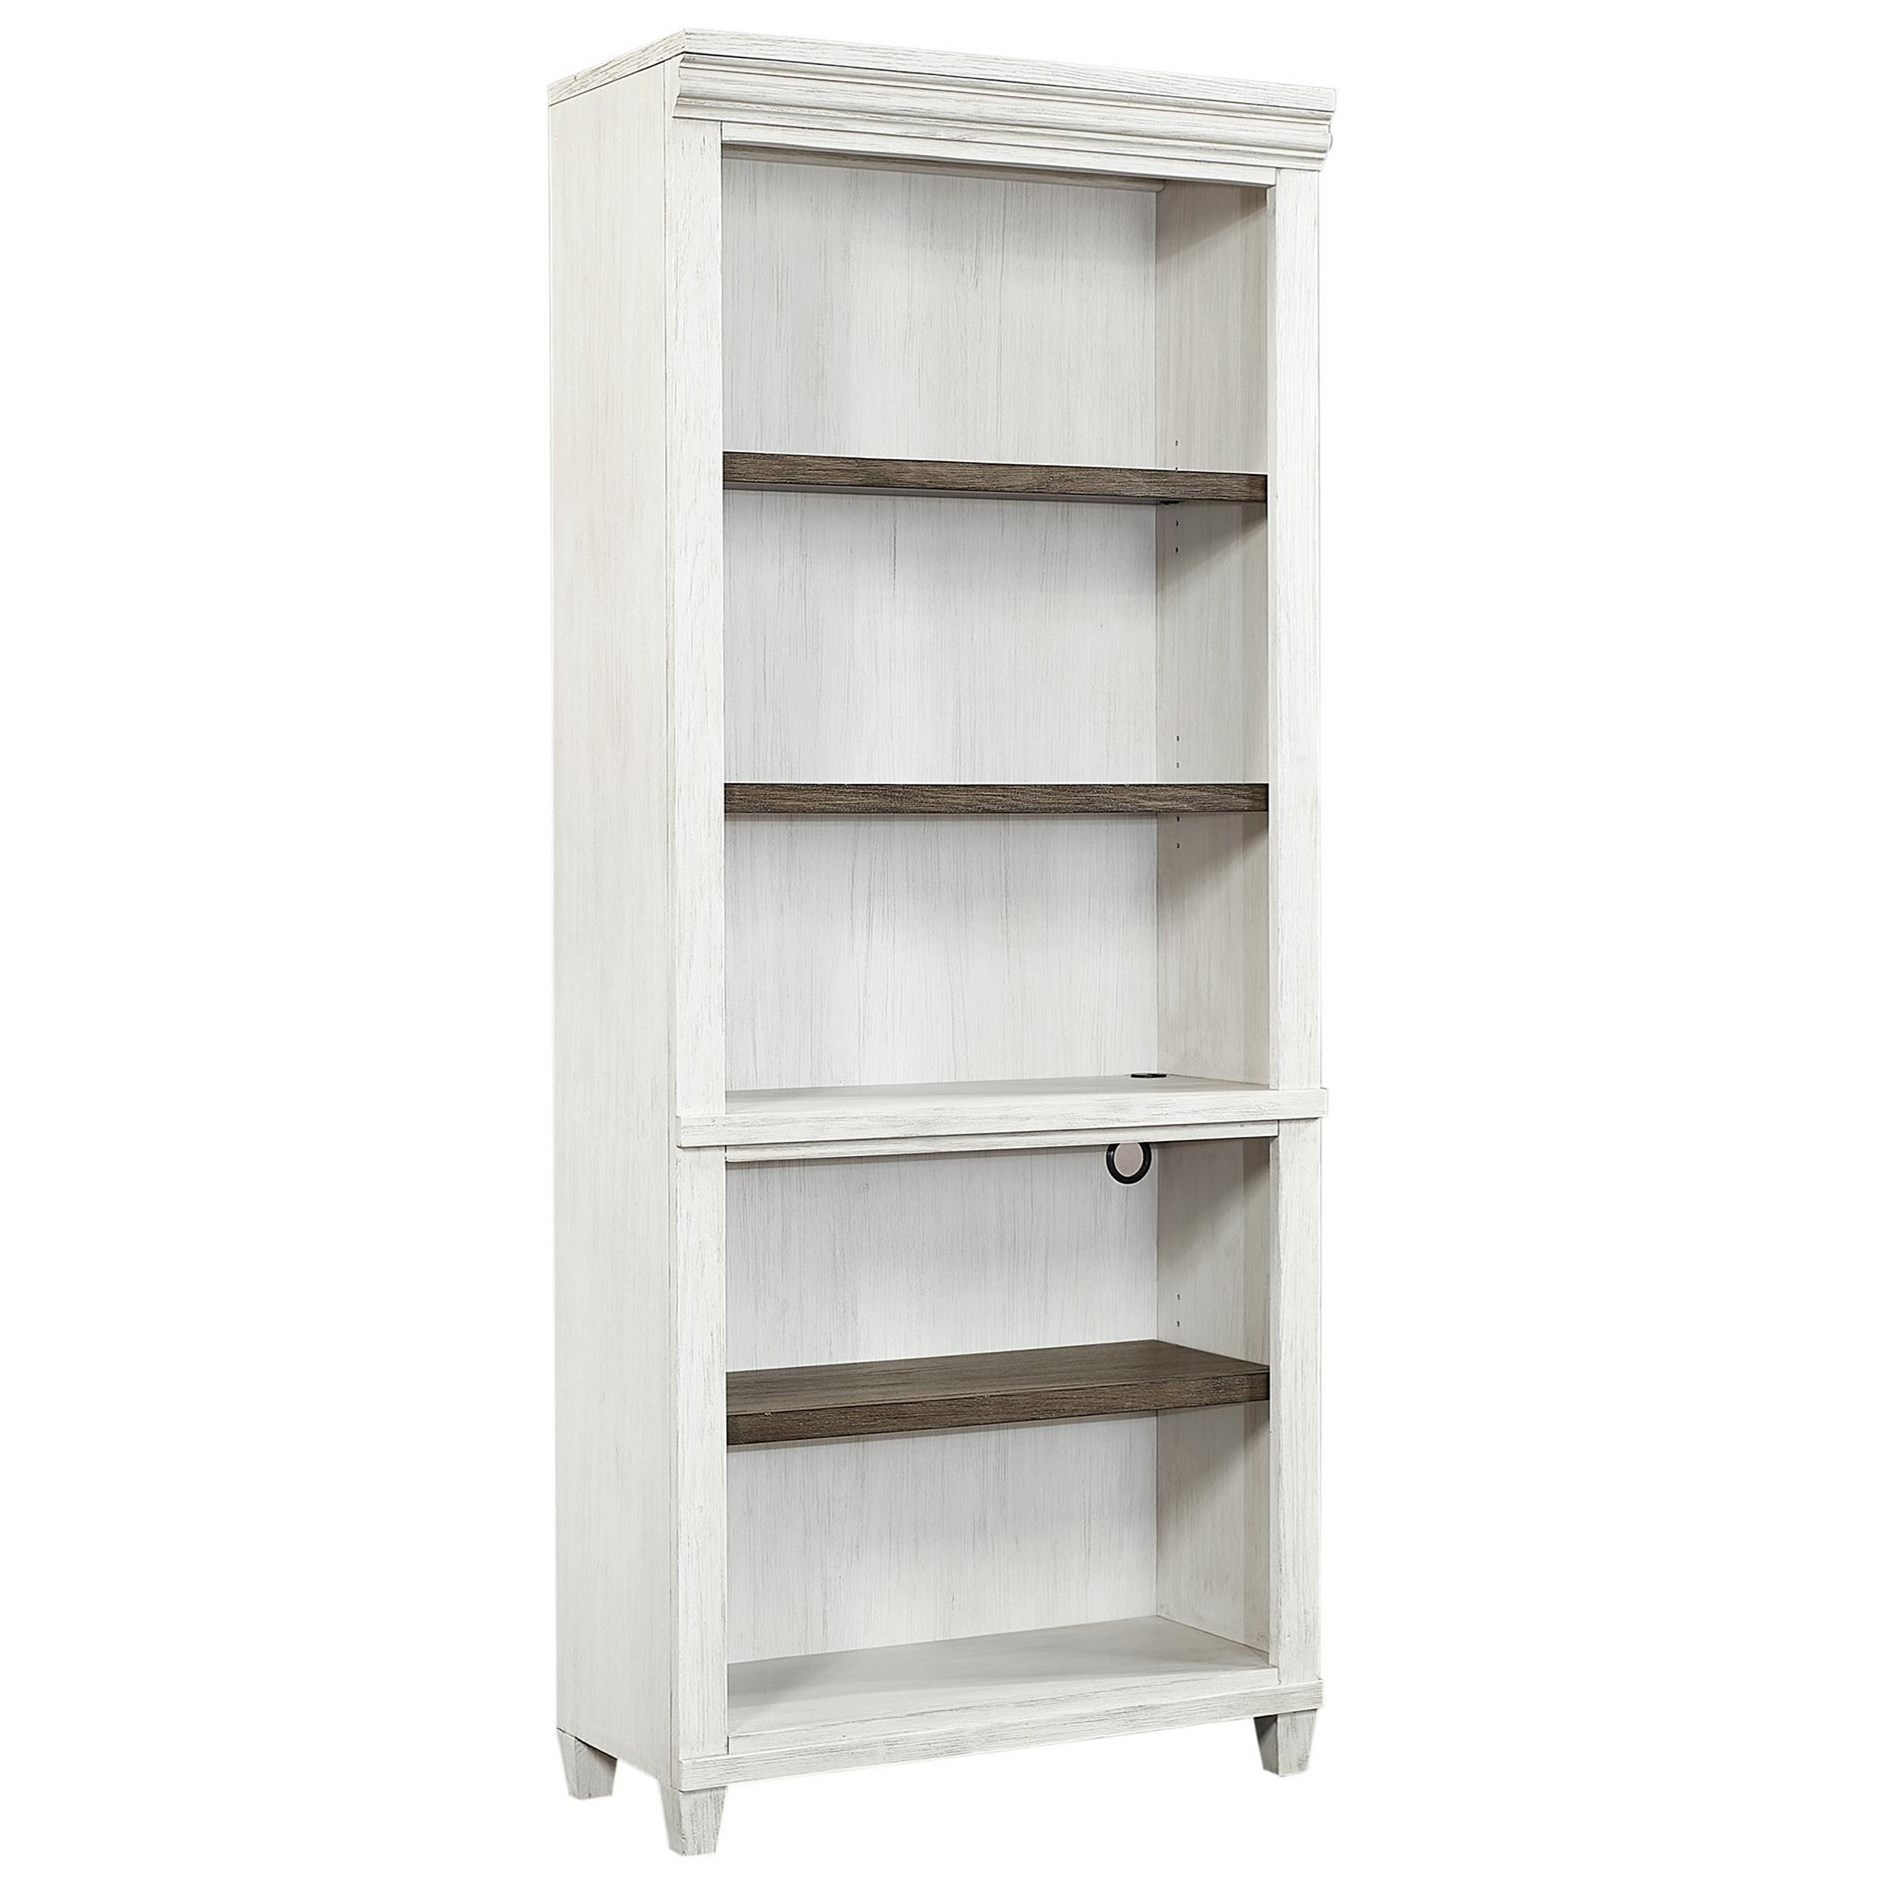 Caraway Open Bookcase  by Aspenhome at Walker's Furniture